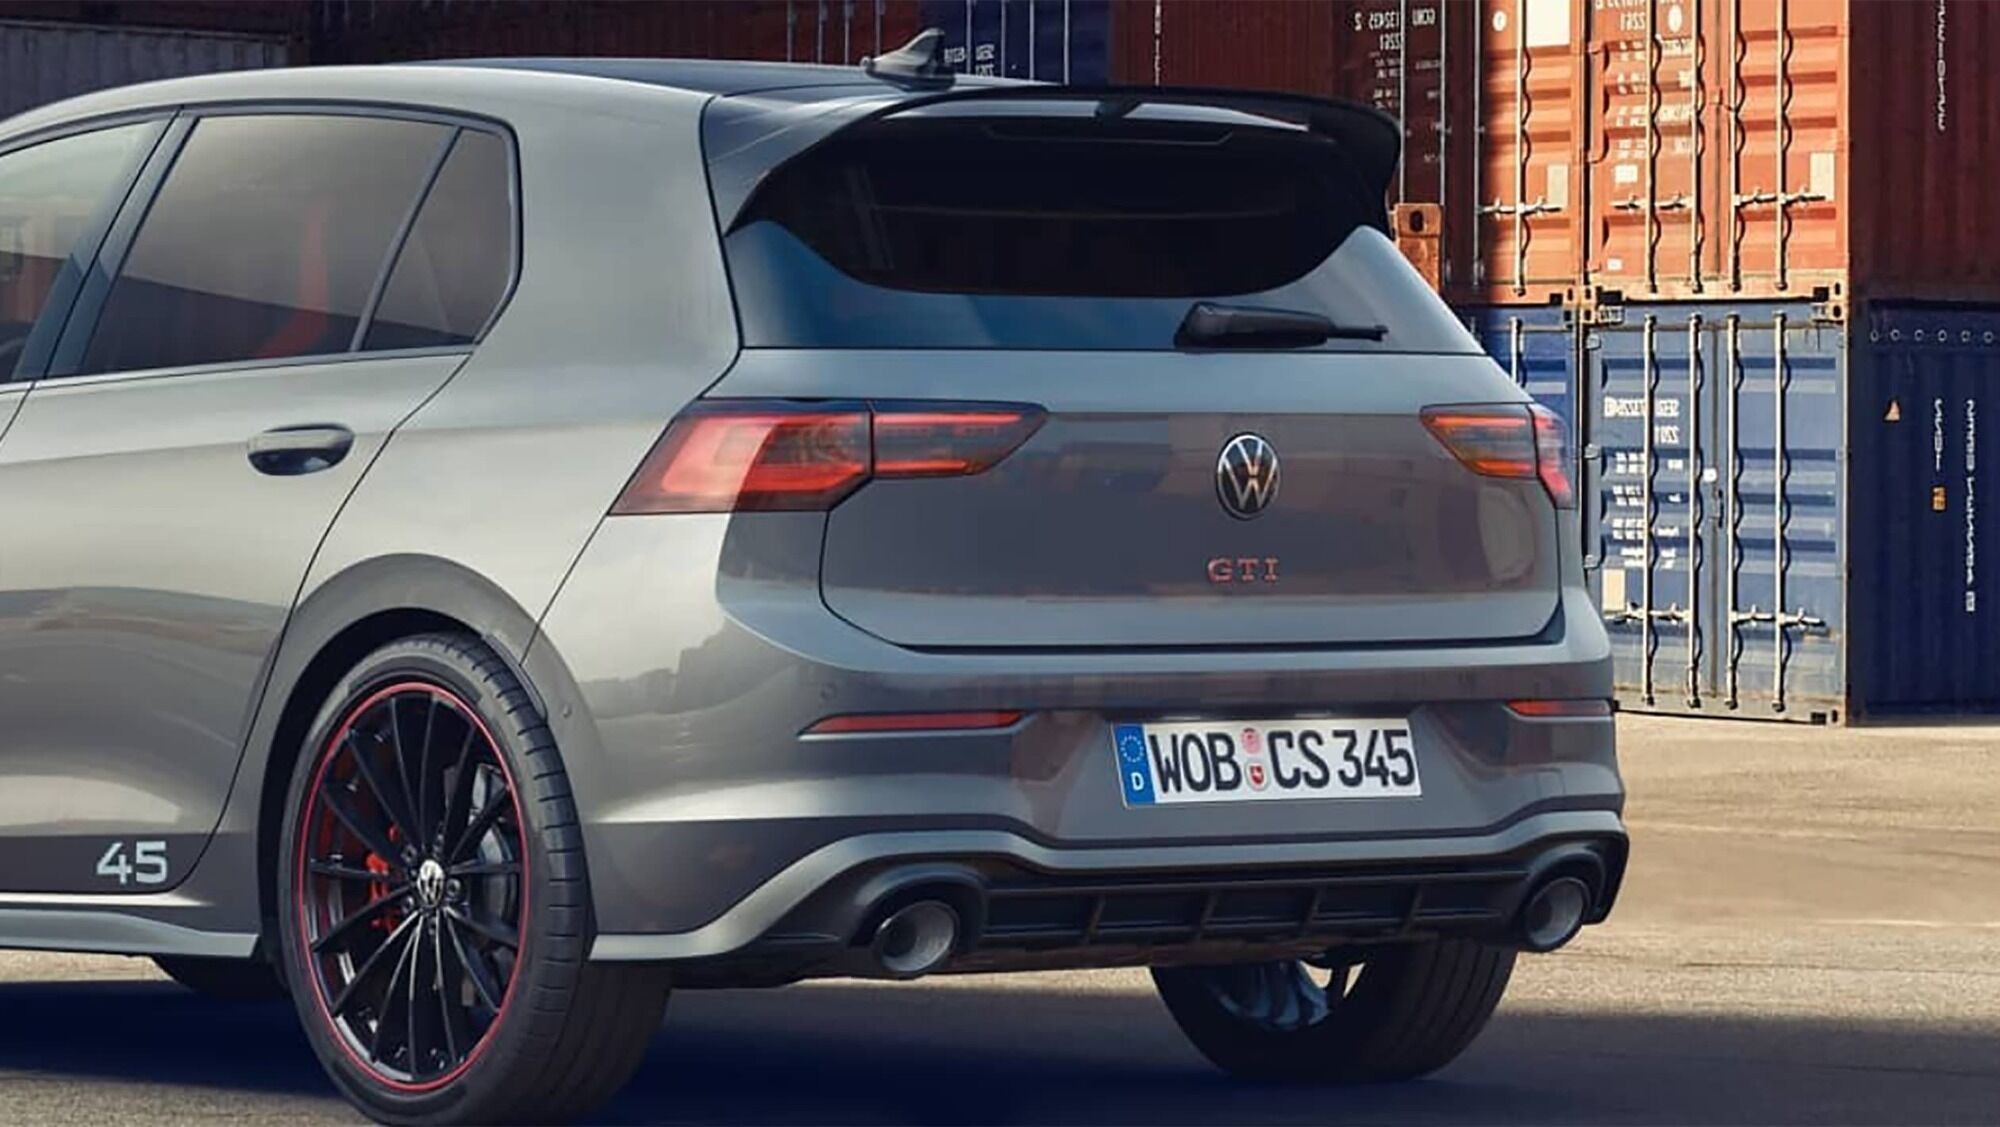 Задня частина Volkswagen Golf GTI Edition 45